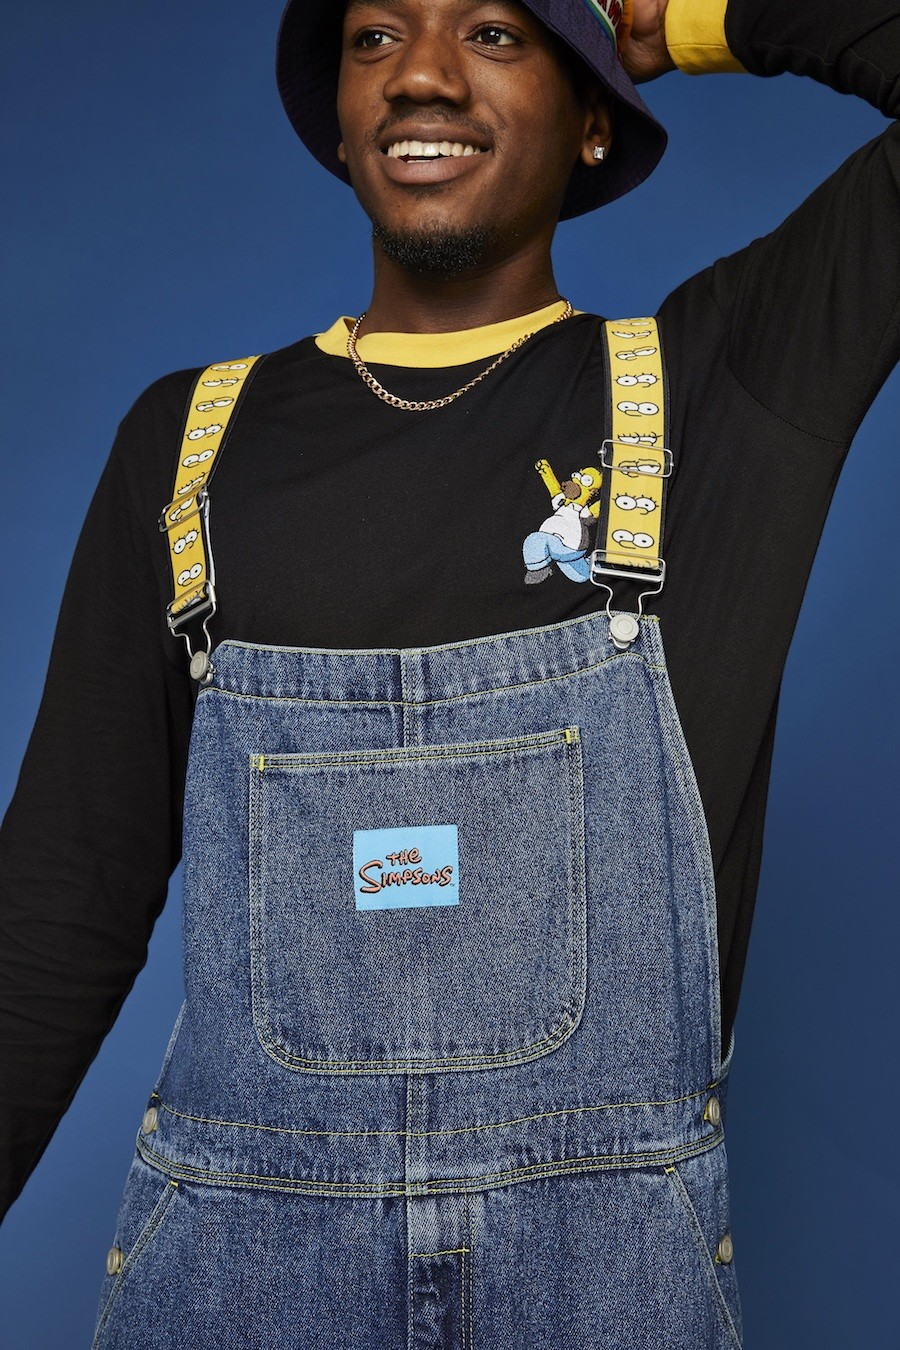 Asos x The Simpson